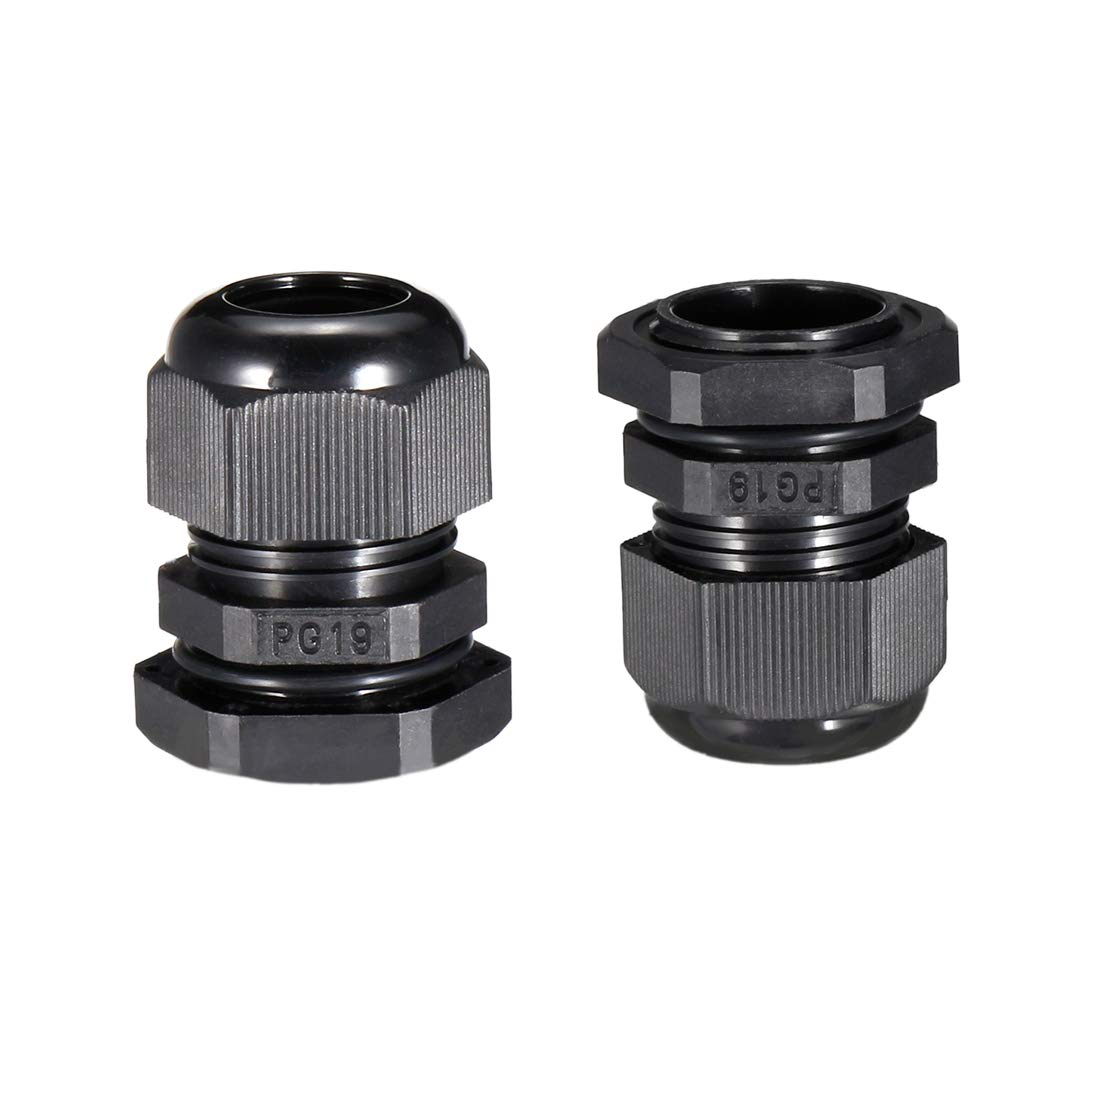 36 Pcs Black PG9 Plastic Connector Gland for 4mm-8mm Cable uxcell a14042200ux0222